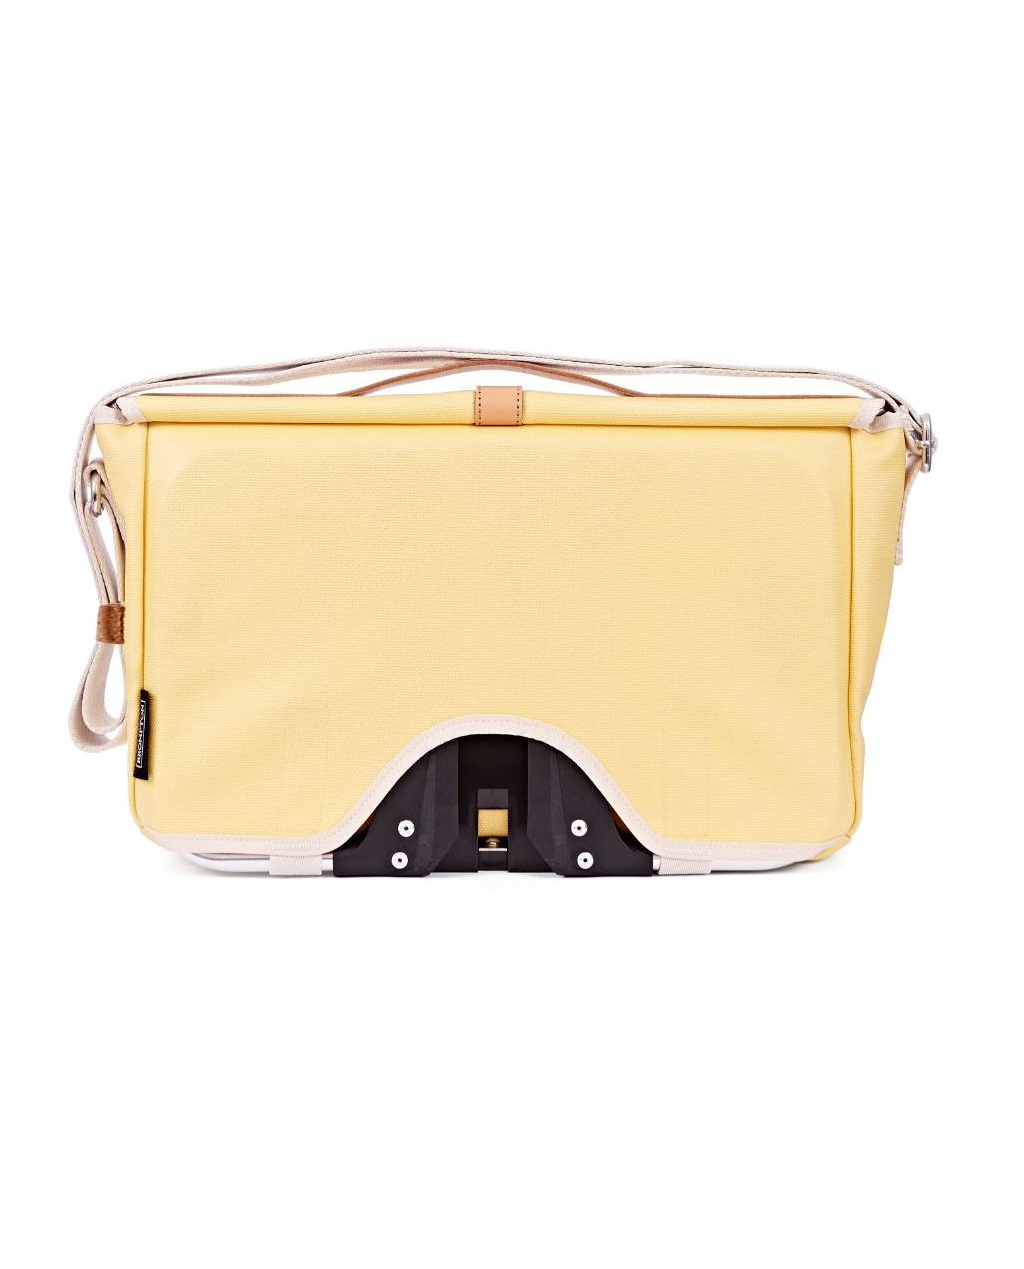 Q-Parts - Brompton Shoulder Bag - Yellow